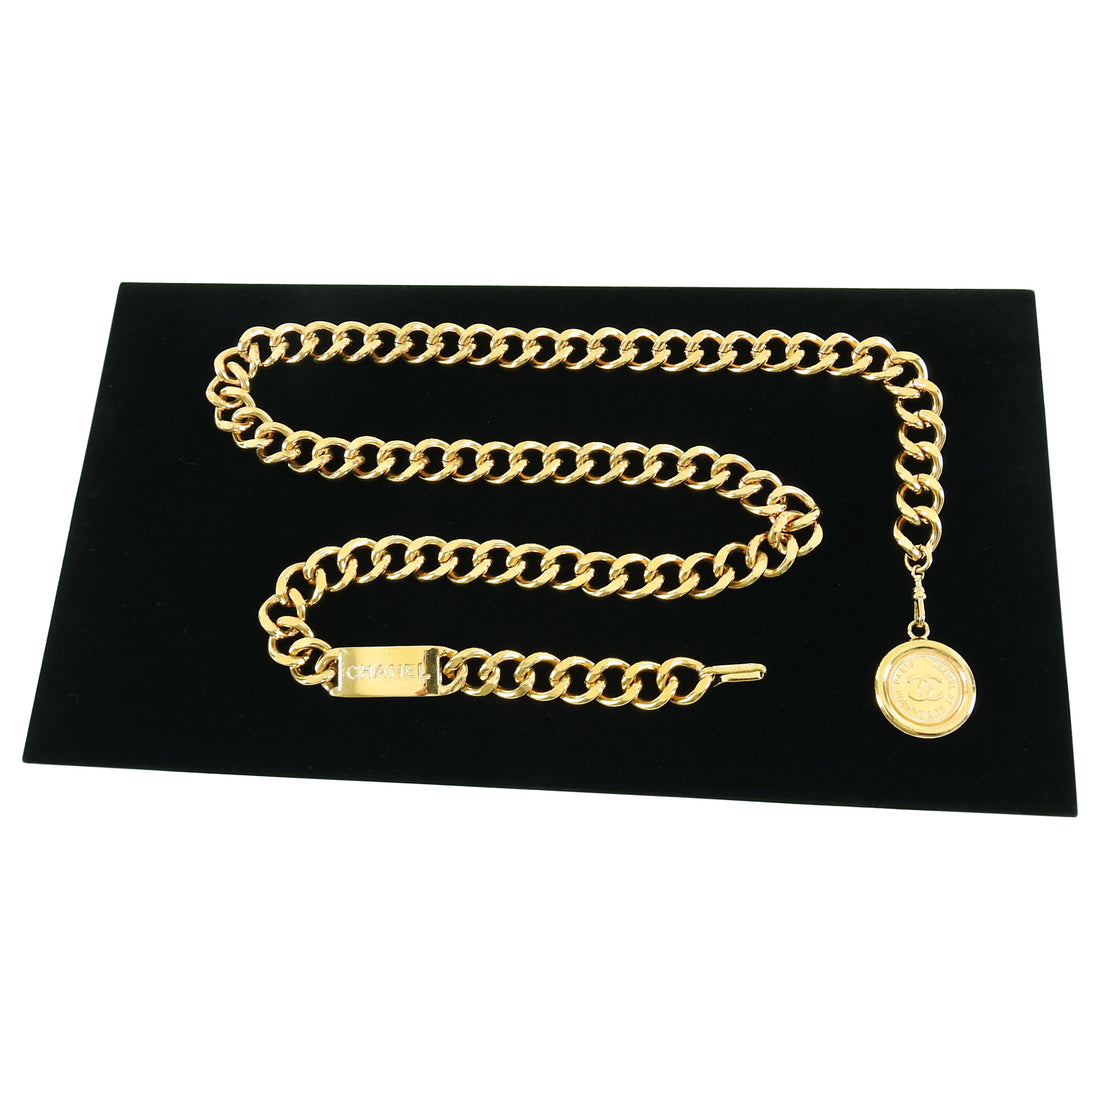 Chanel Vintage 1990's Gold ID Medallion Chain Belt